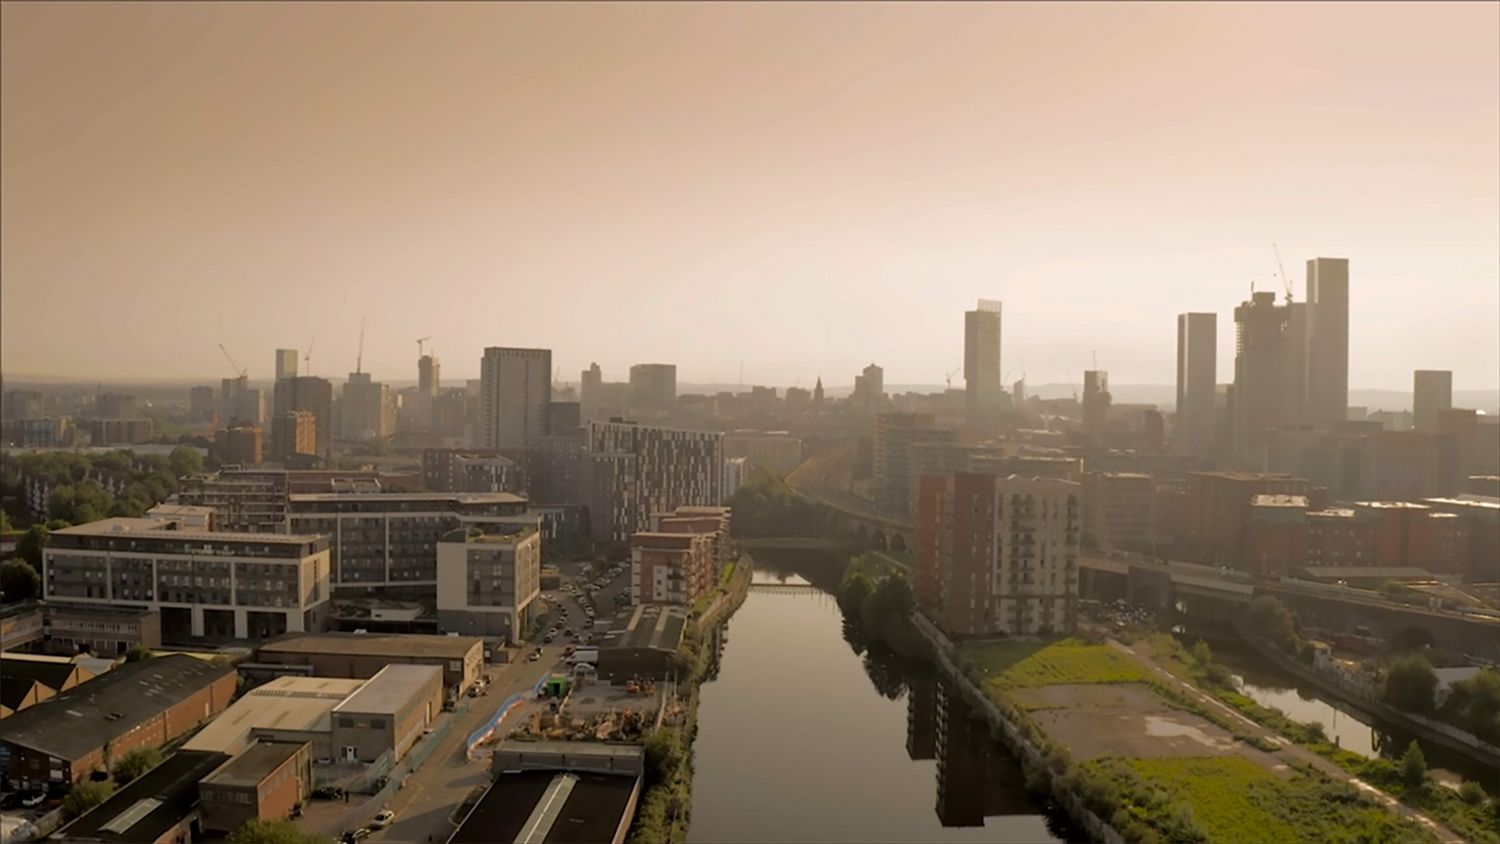 TUW_075_DRONE SHOT OF MANCHESTER_3